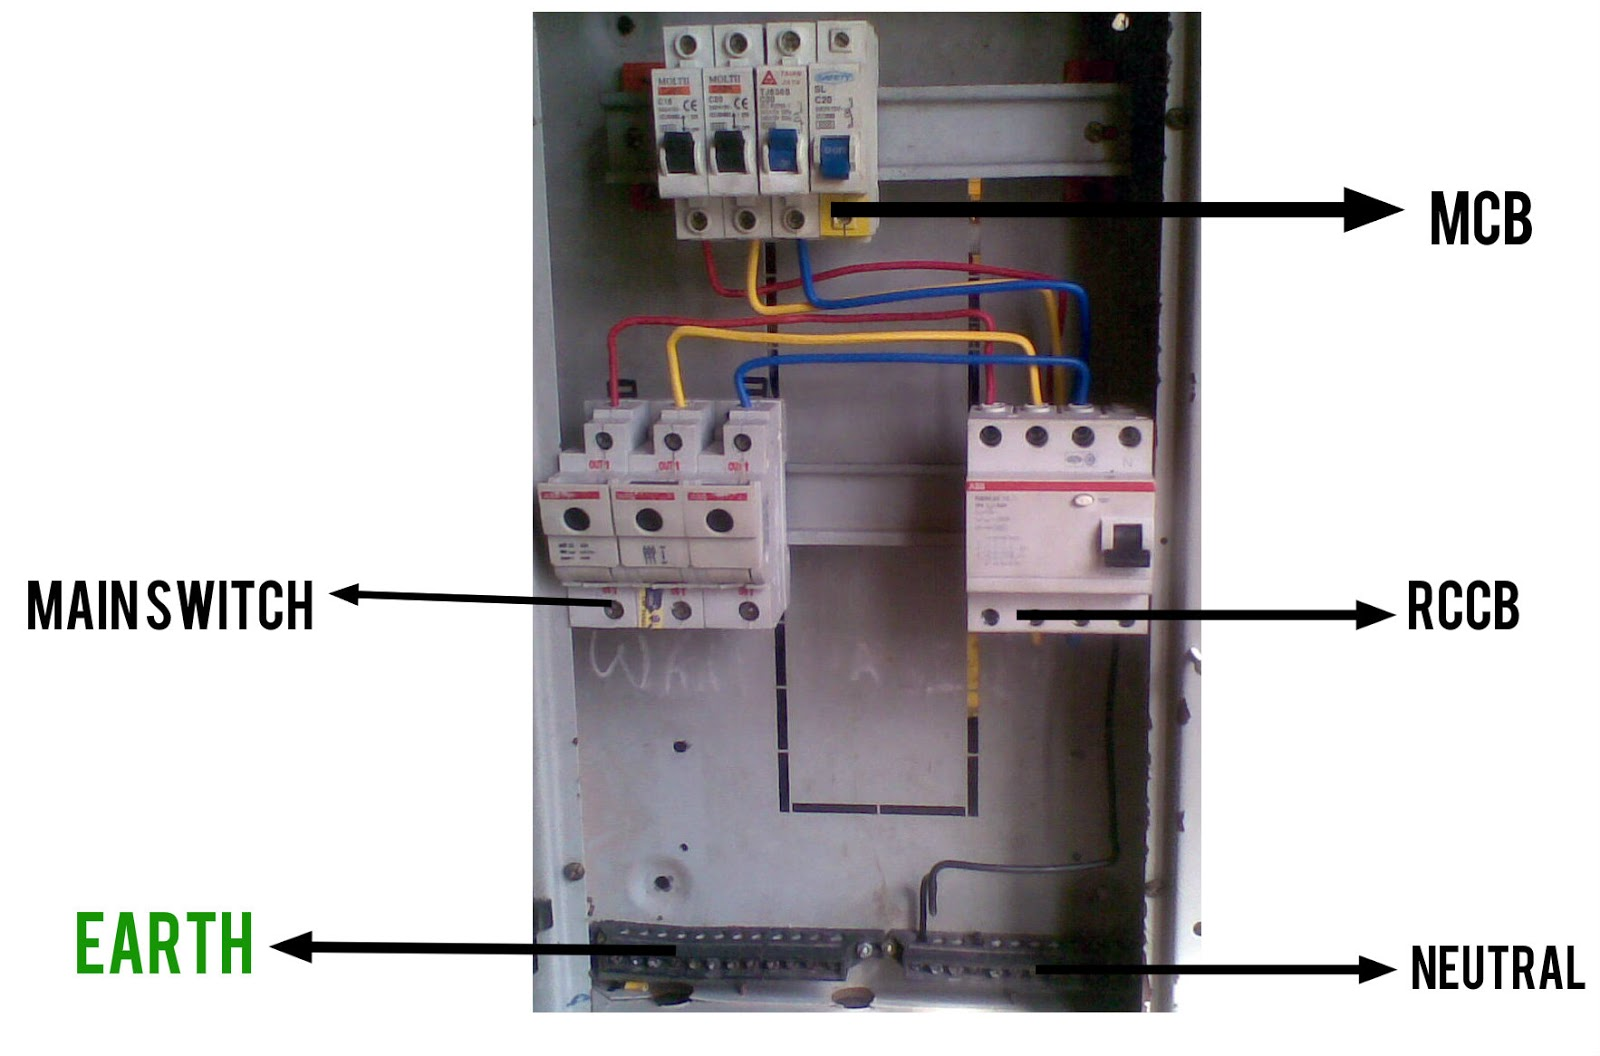 Mcb Board Wiring Diagram Led With Relay The World Through Electricity Electrical Distribution